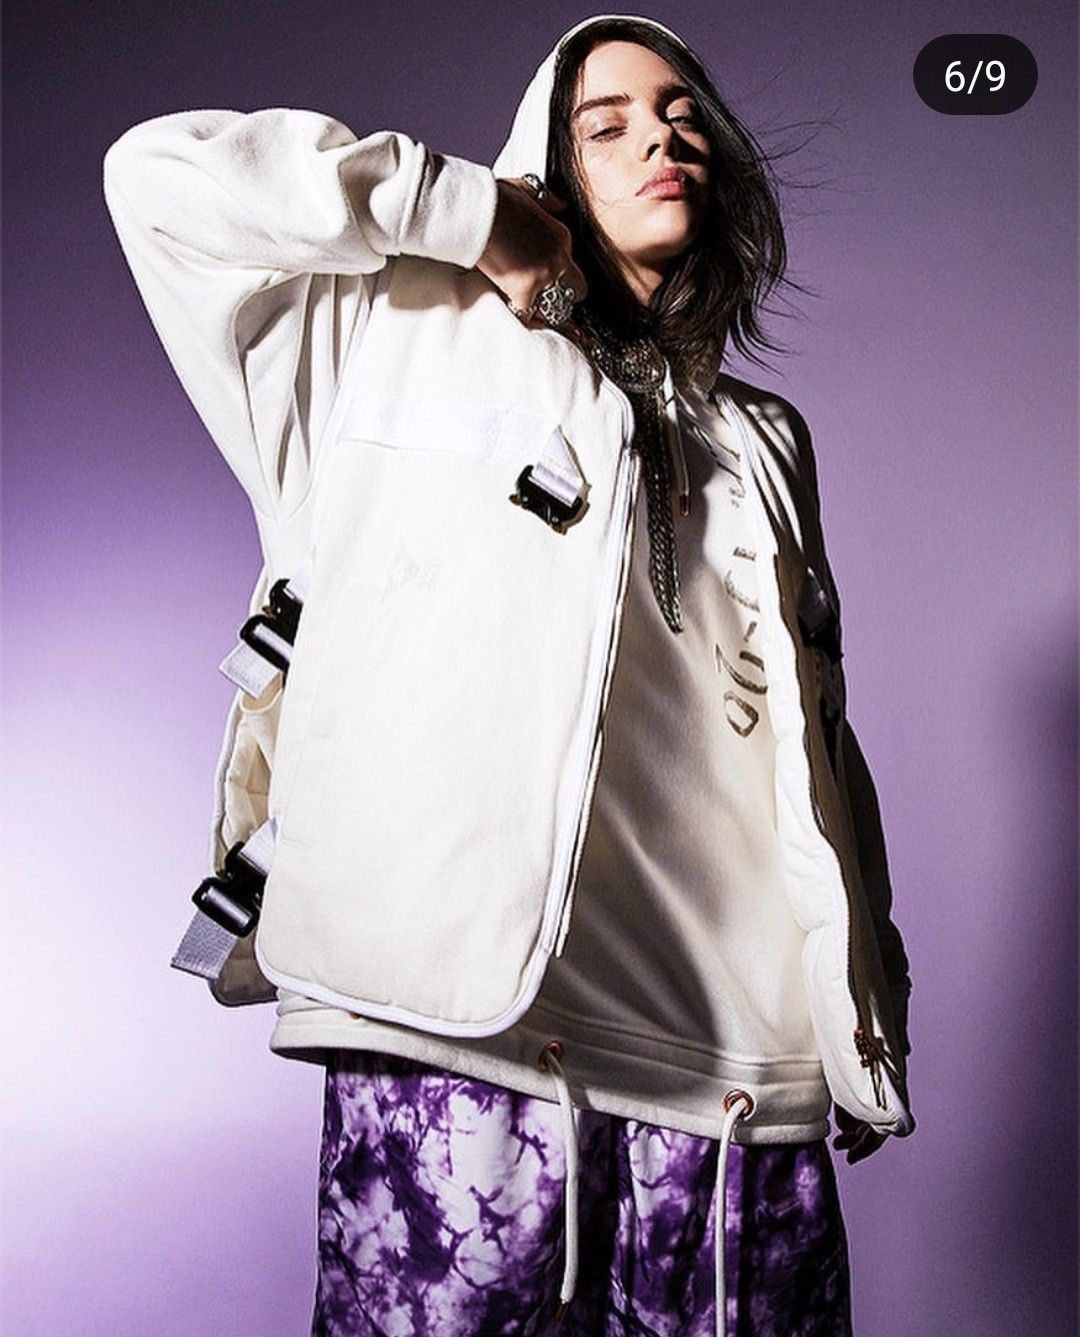 Billie Eilish for Vogue Australia July 2019 | Billie, Billie eilish, Vogue  australia